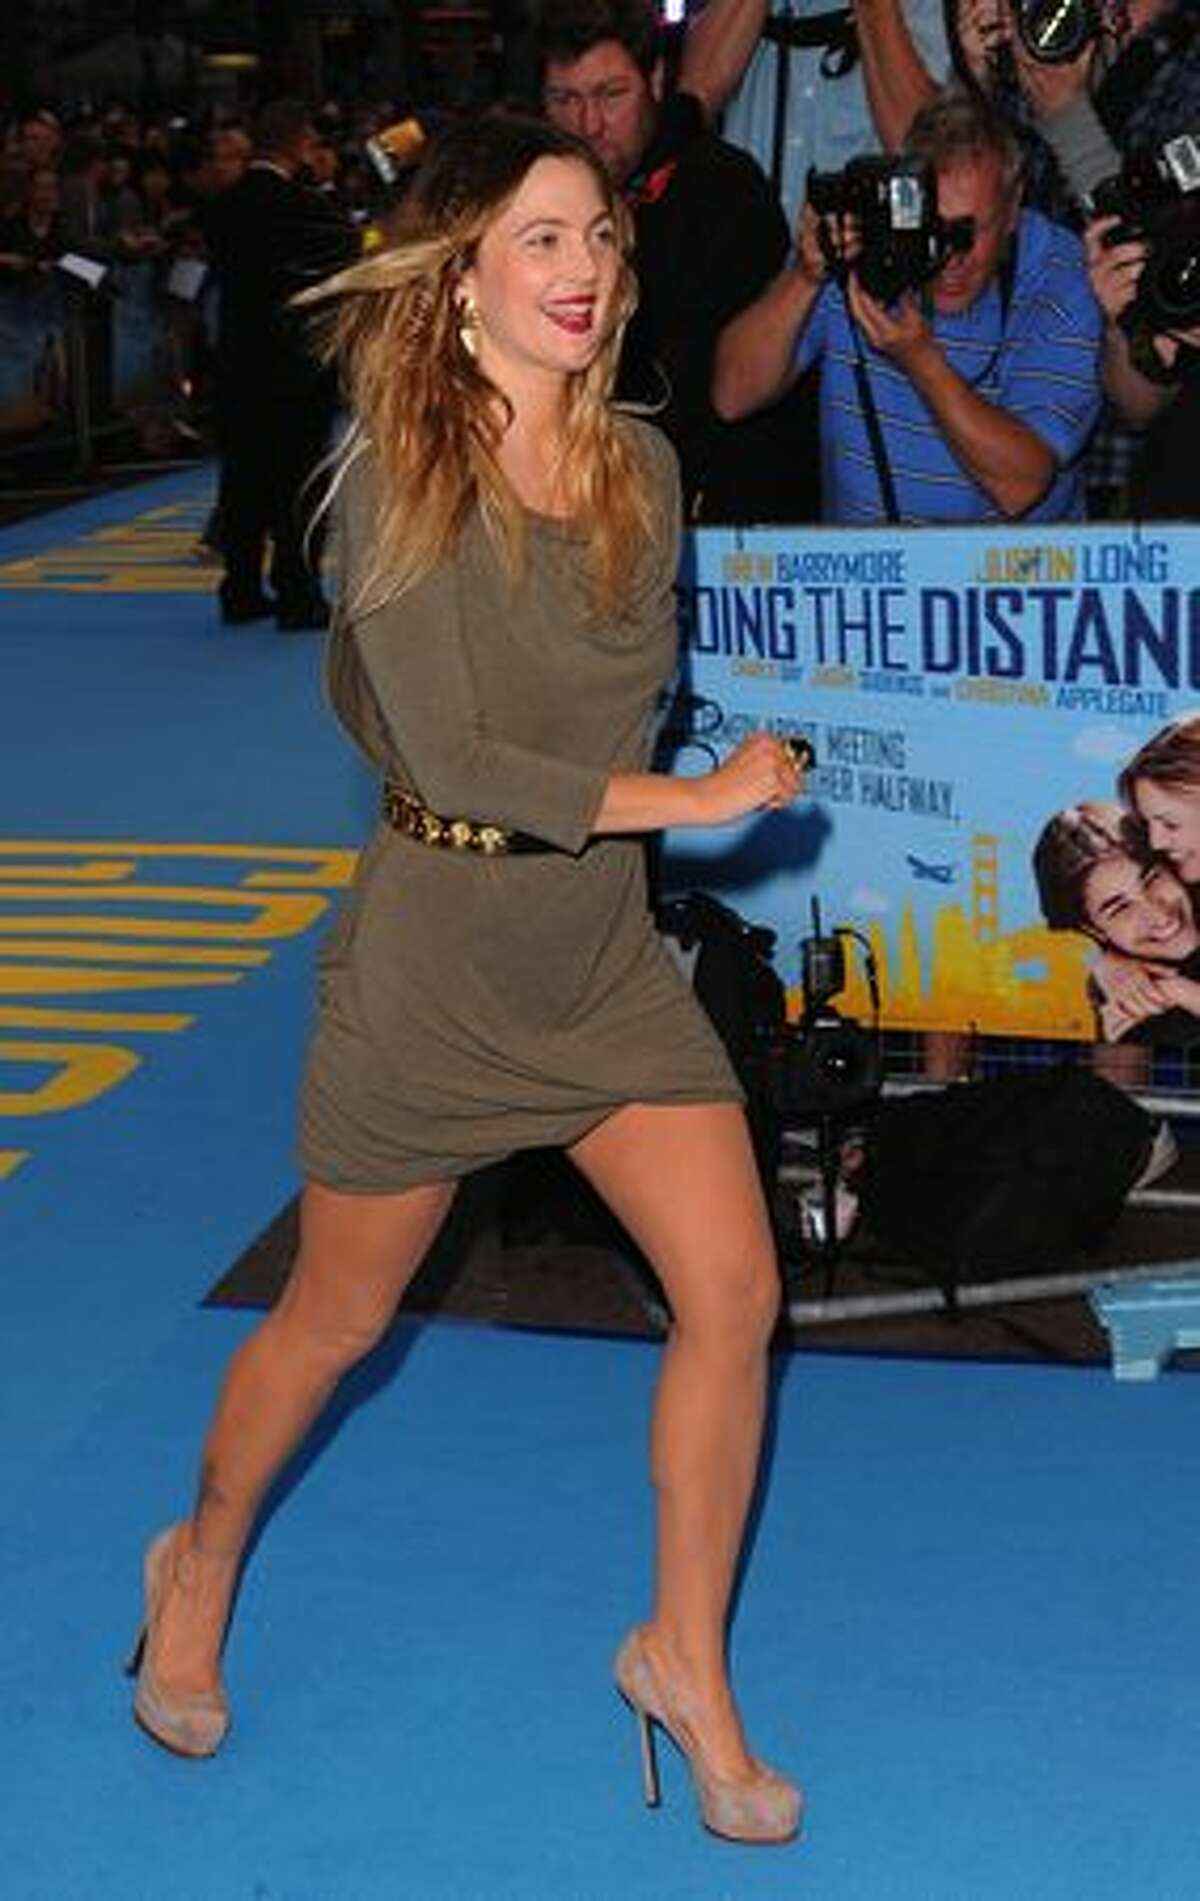 Actress Drew Barrymore attends the world premiere of 'Going The Distance' at the Vue, Leicester Square, in London, England.